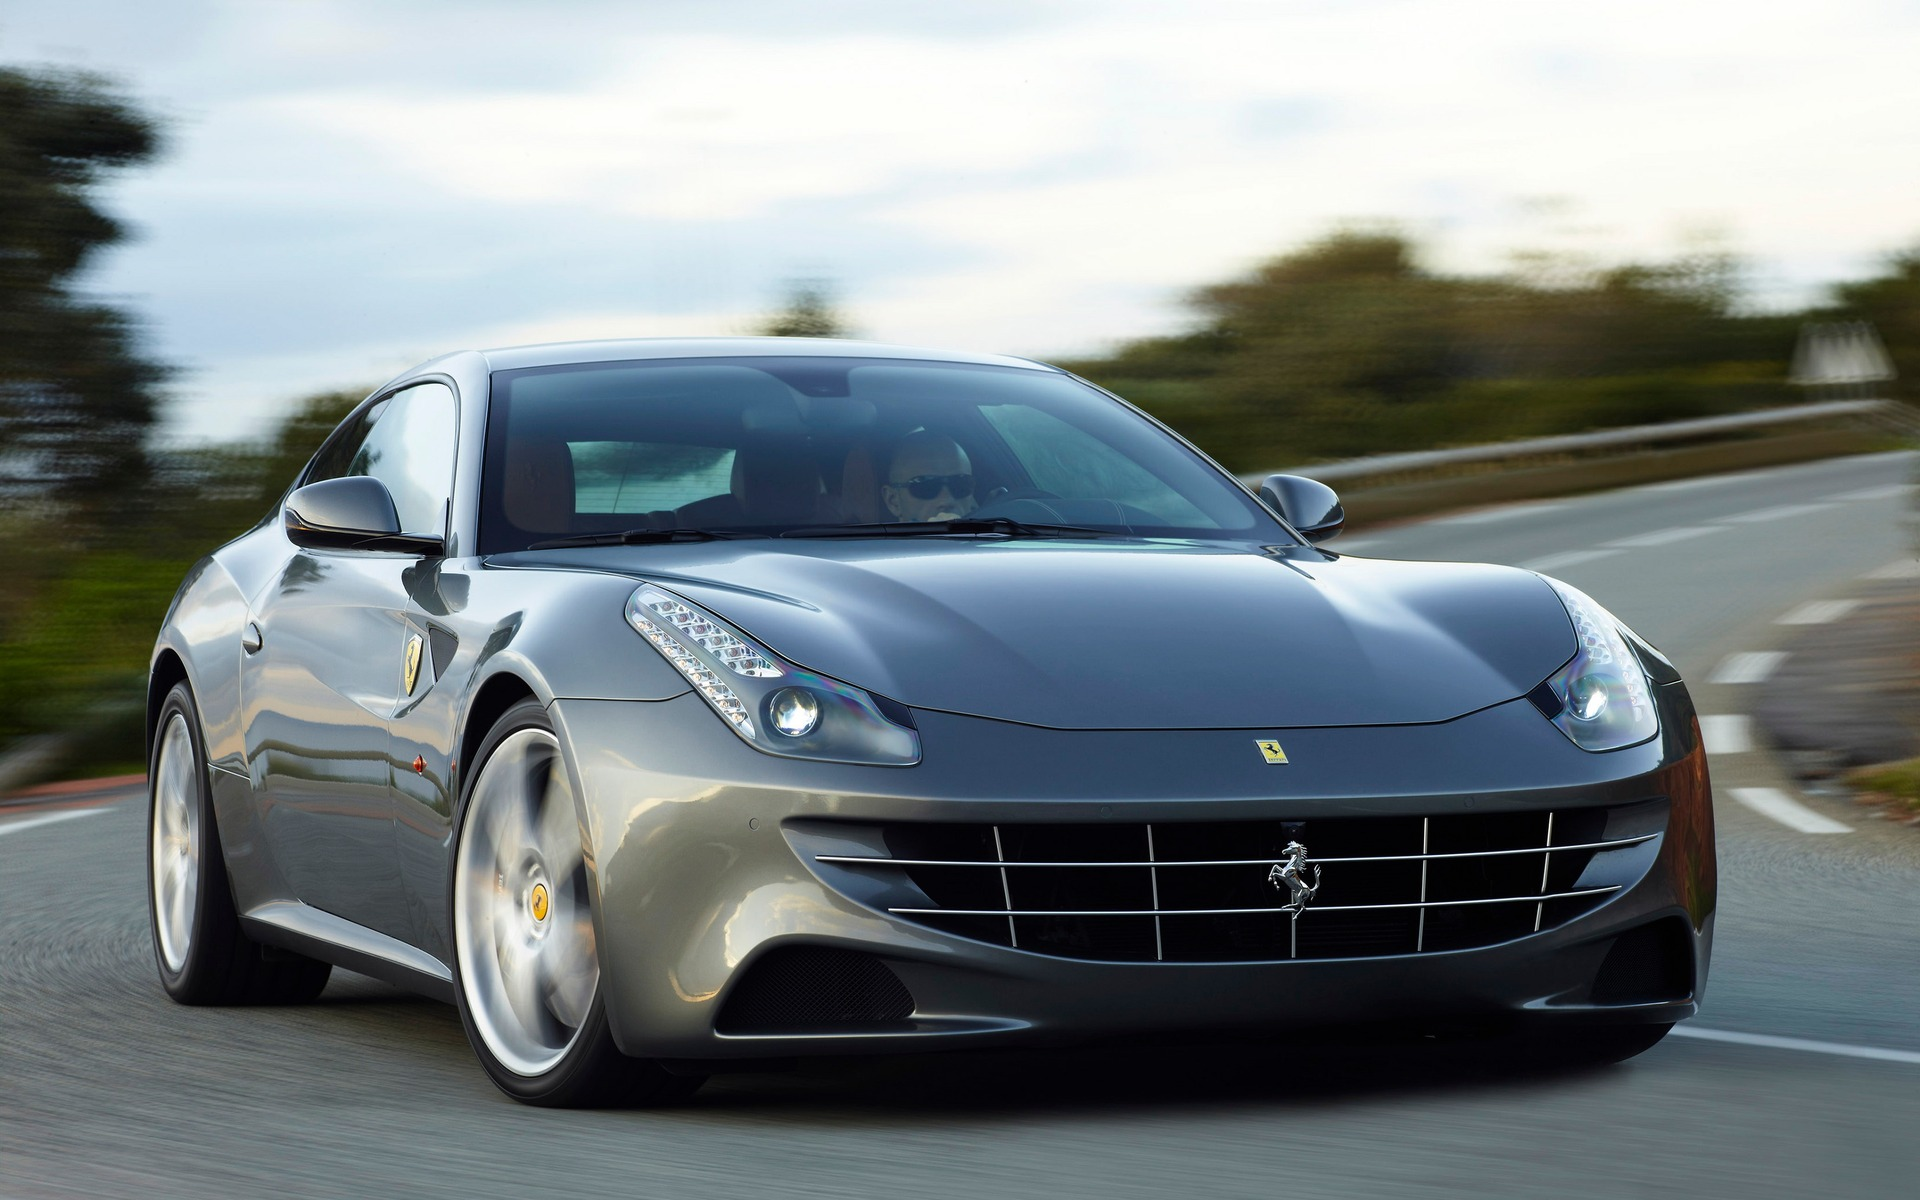 2016 Ferrari FF , News, reviews, picture galleries and